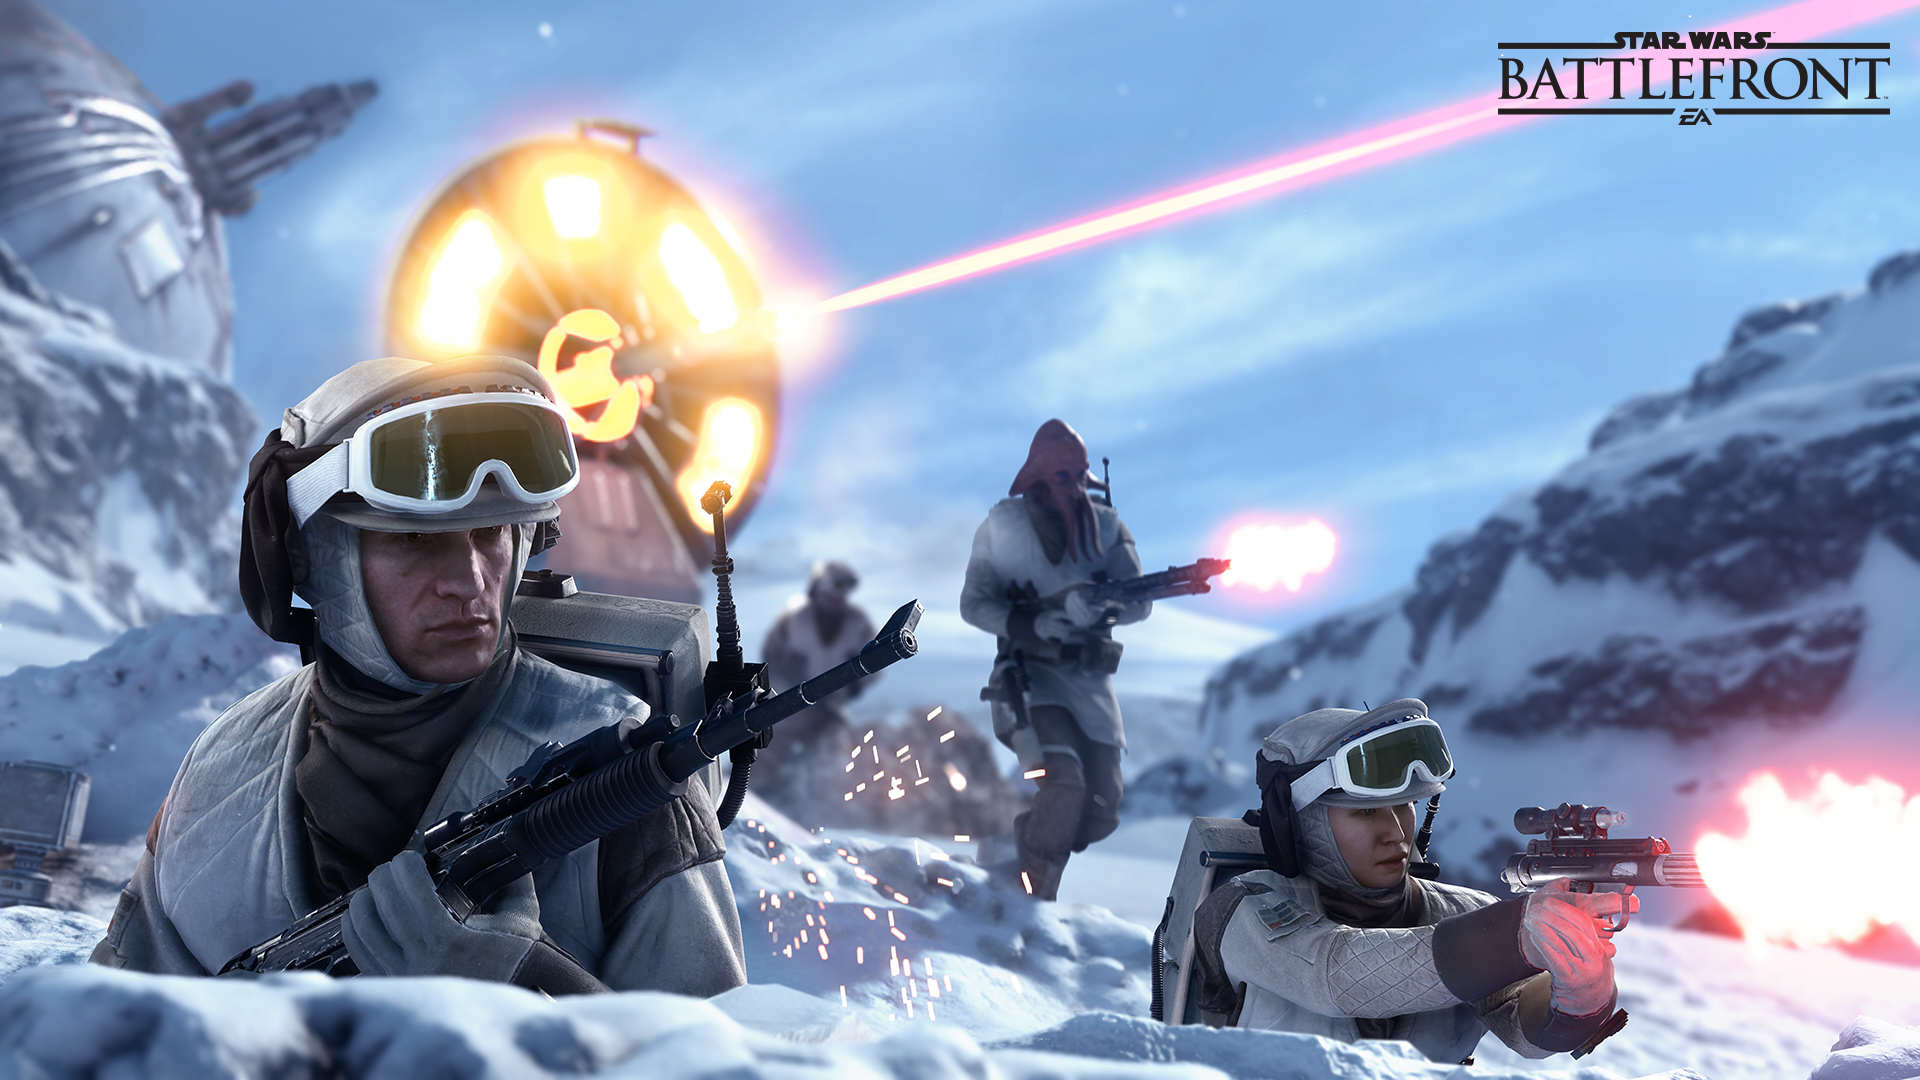 Here Are The 2016 DICE Award Winners 2885935 star wars battlefront e3 screen 5 weapon variety wm